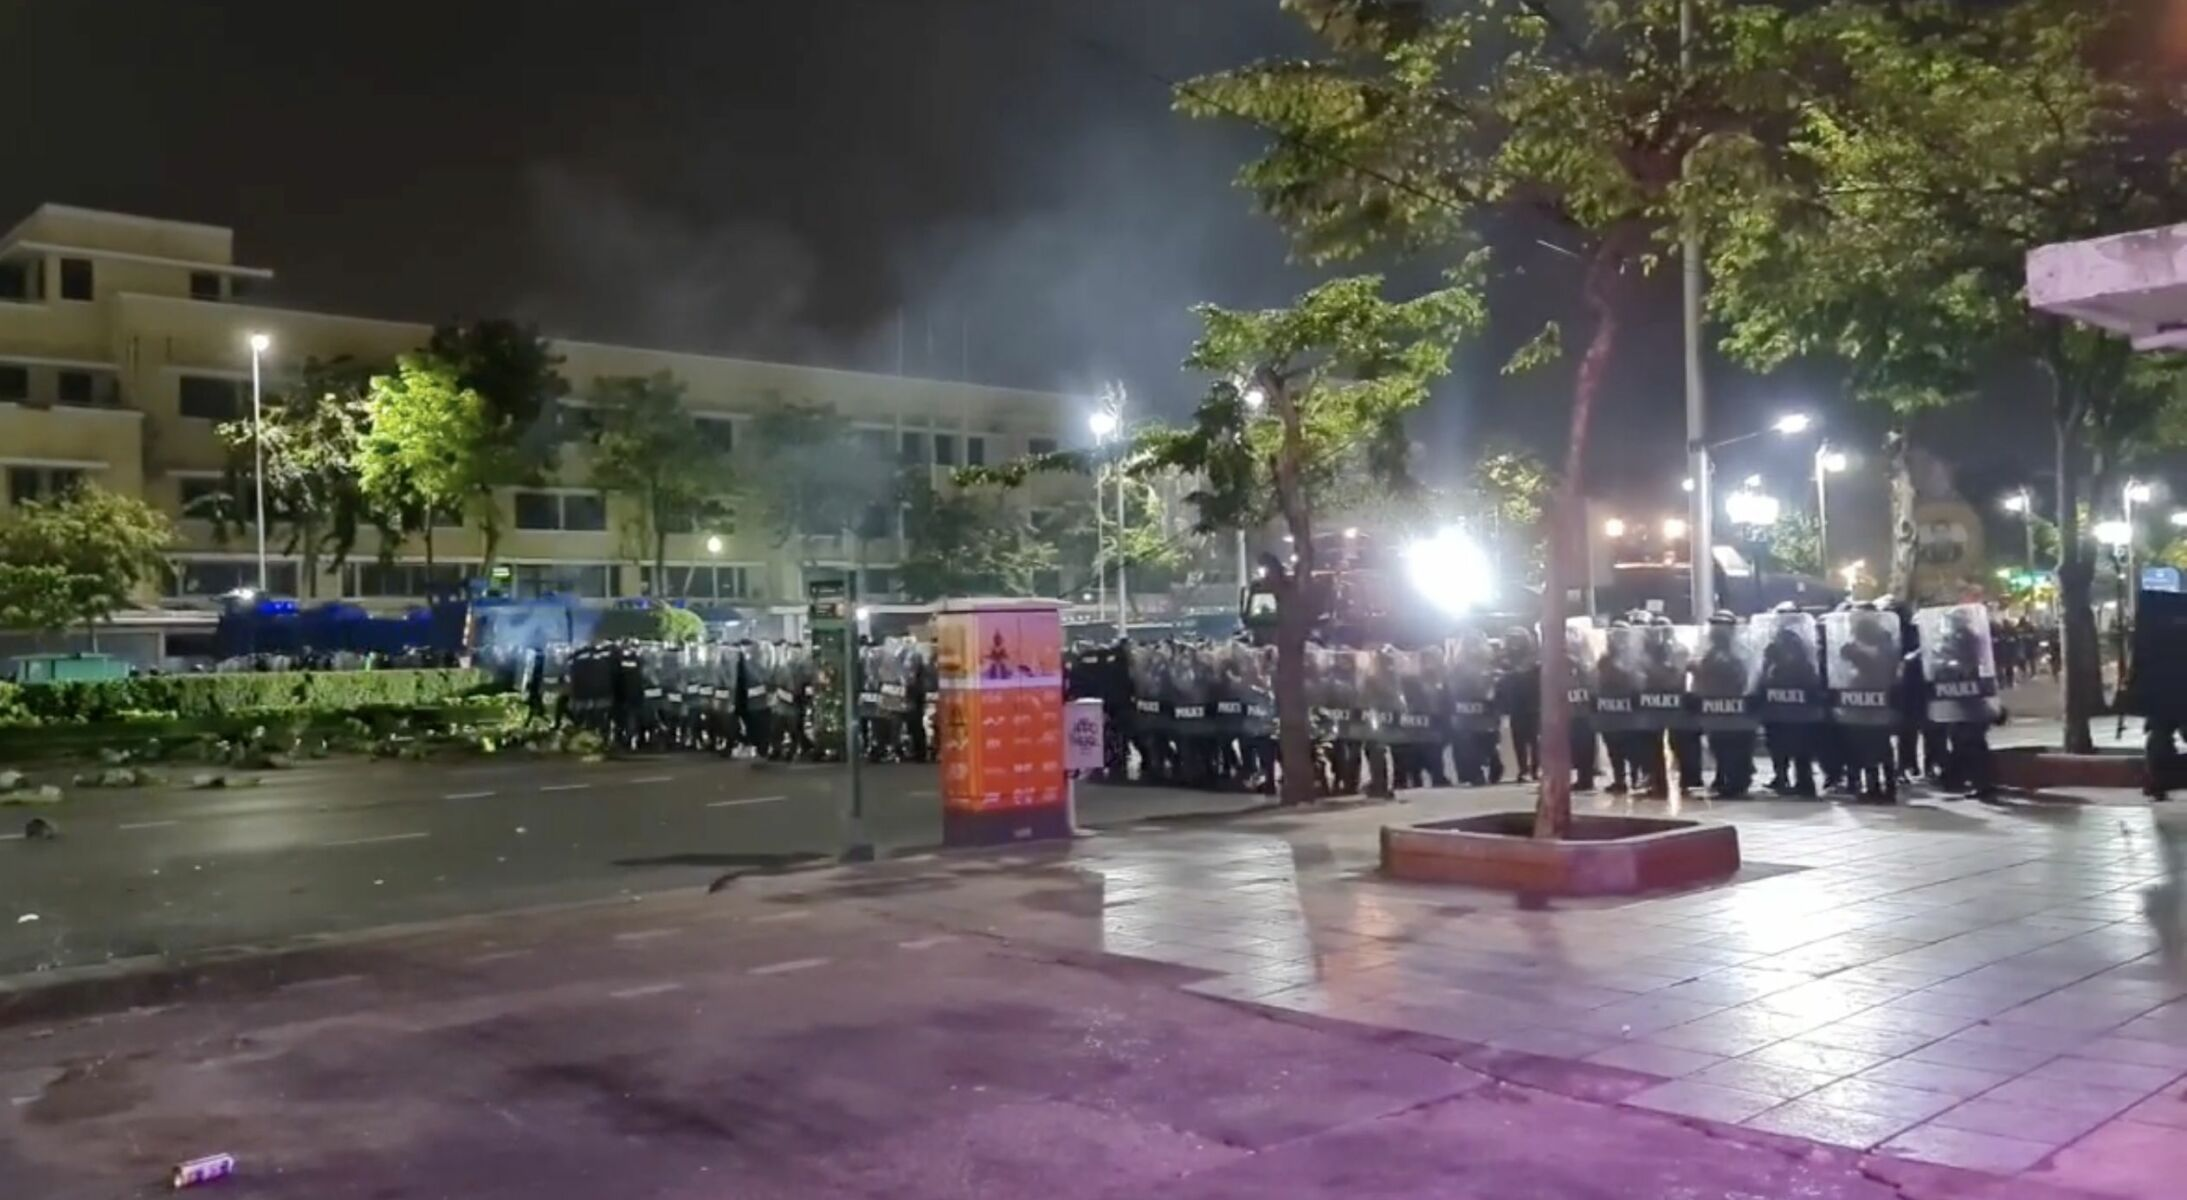 33 people injured and 5 arrested in last night's protests near the Grand Palace in Bangkok | Thaiger